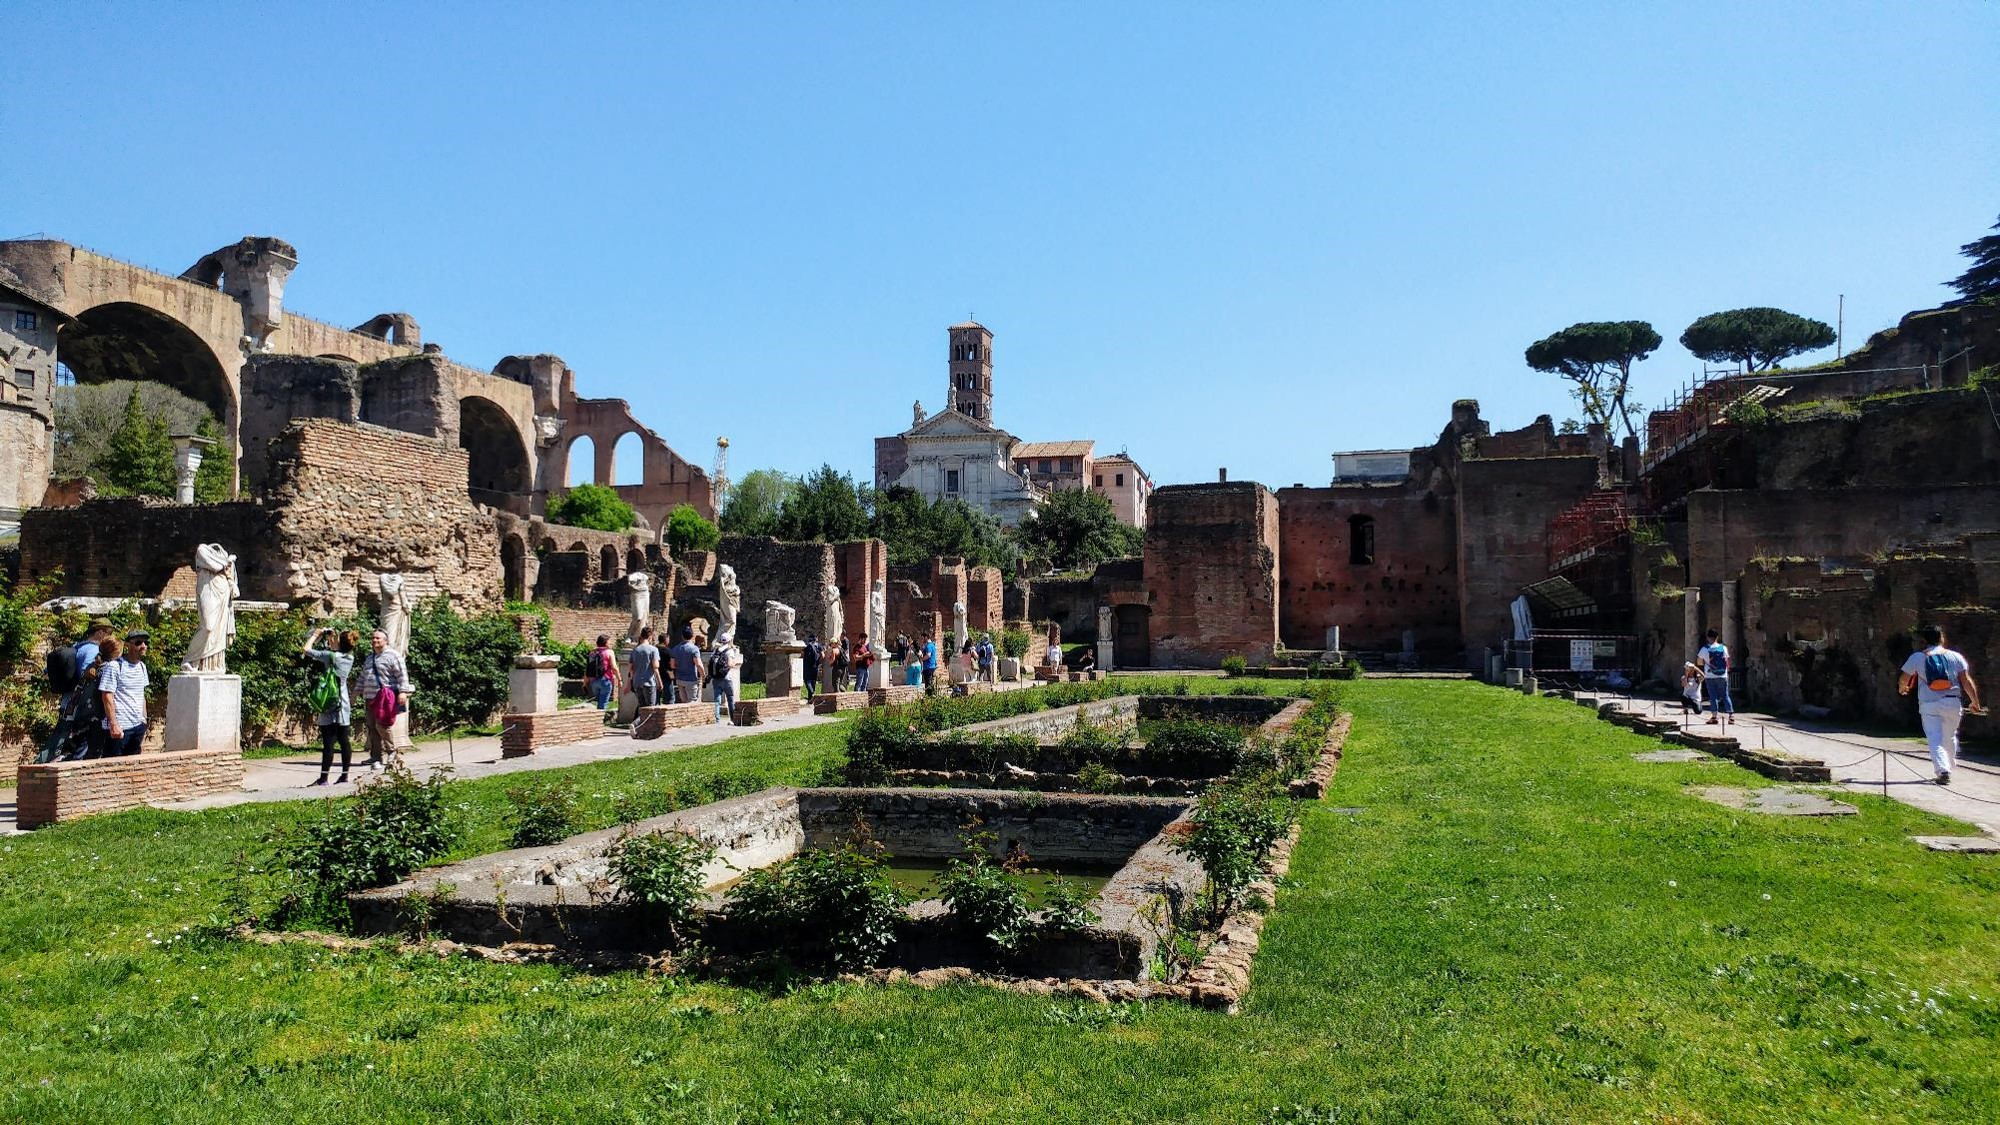 Pool of the Vestal Virgins in the Roman Forum, Rome